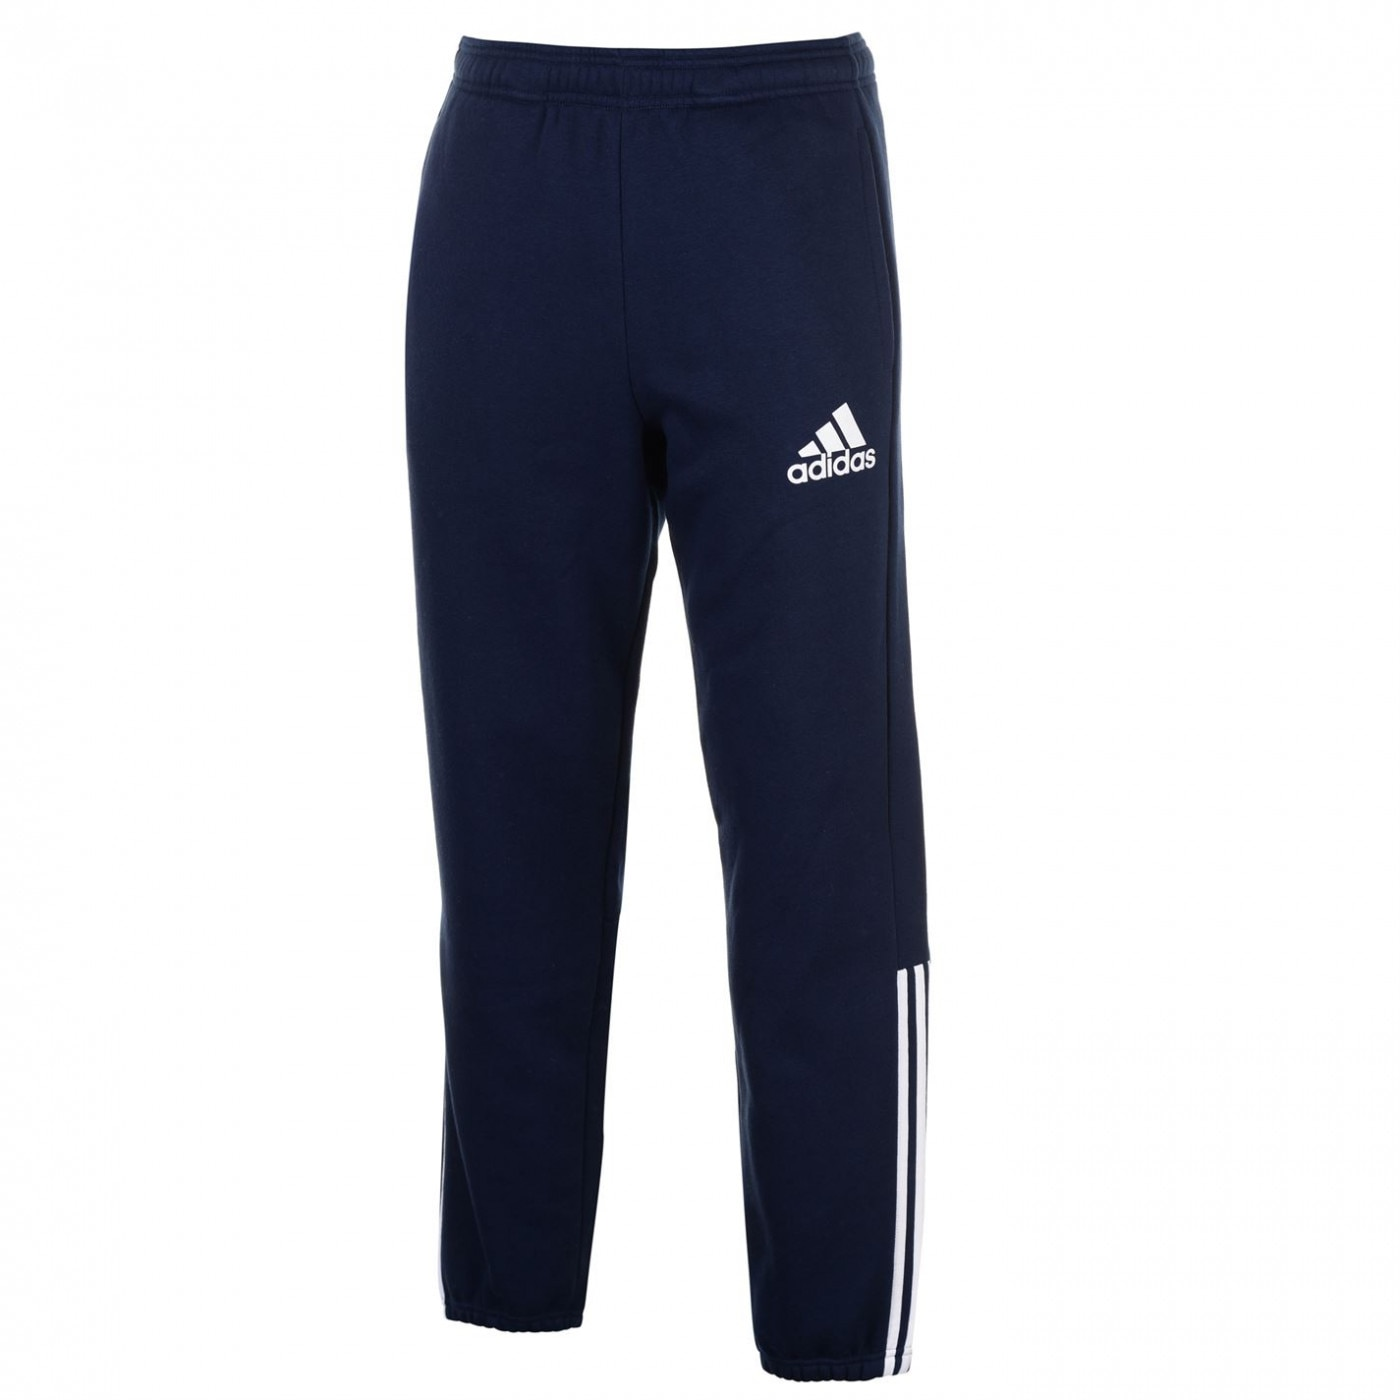 Adidas 3 Stripe Jogging Pants Mens